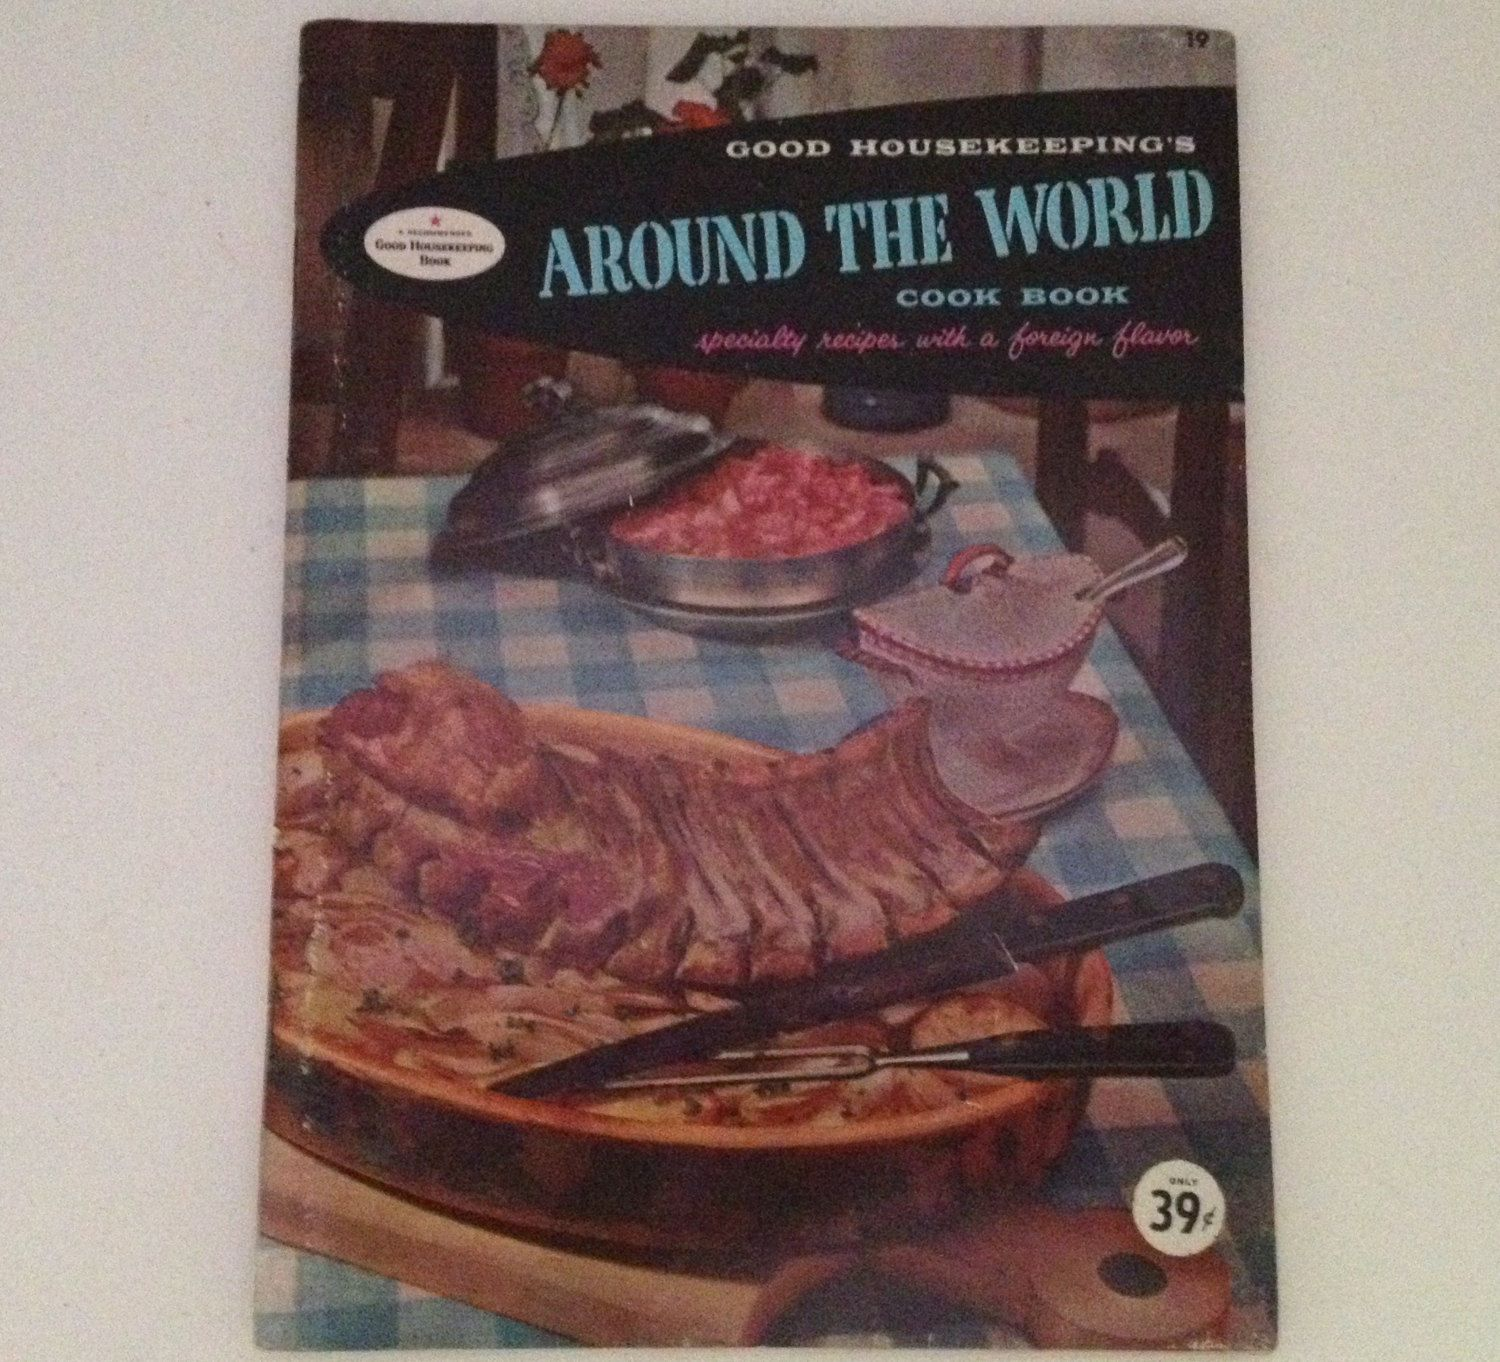 Ethnic Cuisine Book Around The World Cookbook Vintage 1958 Good Housekeeping